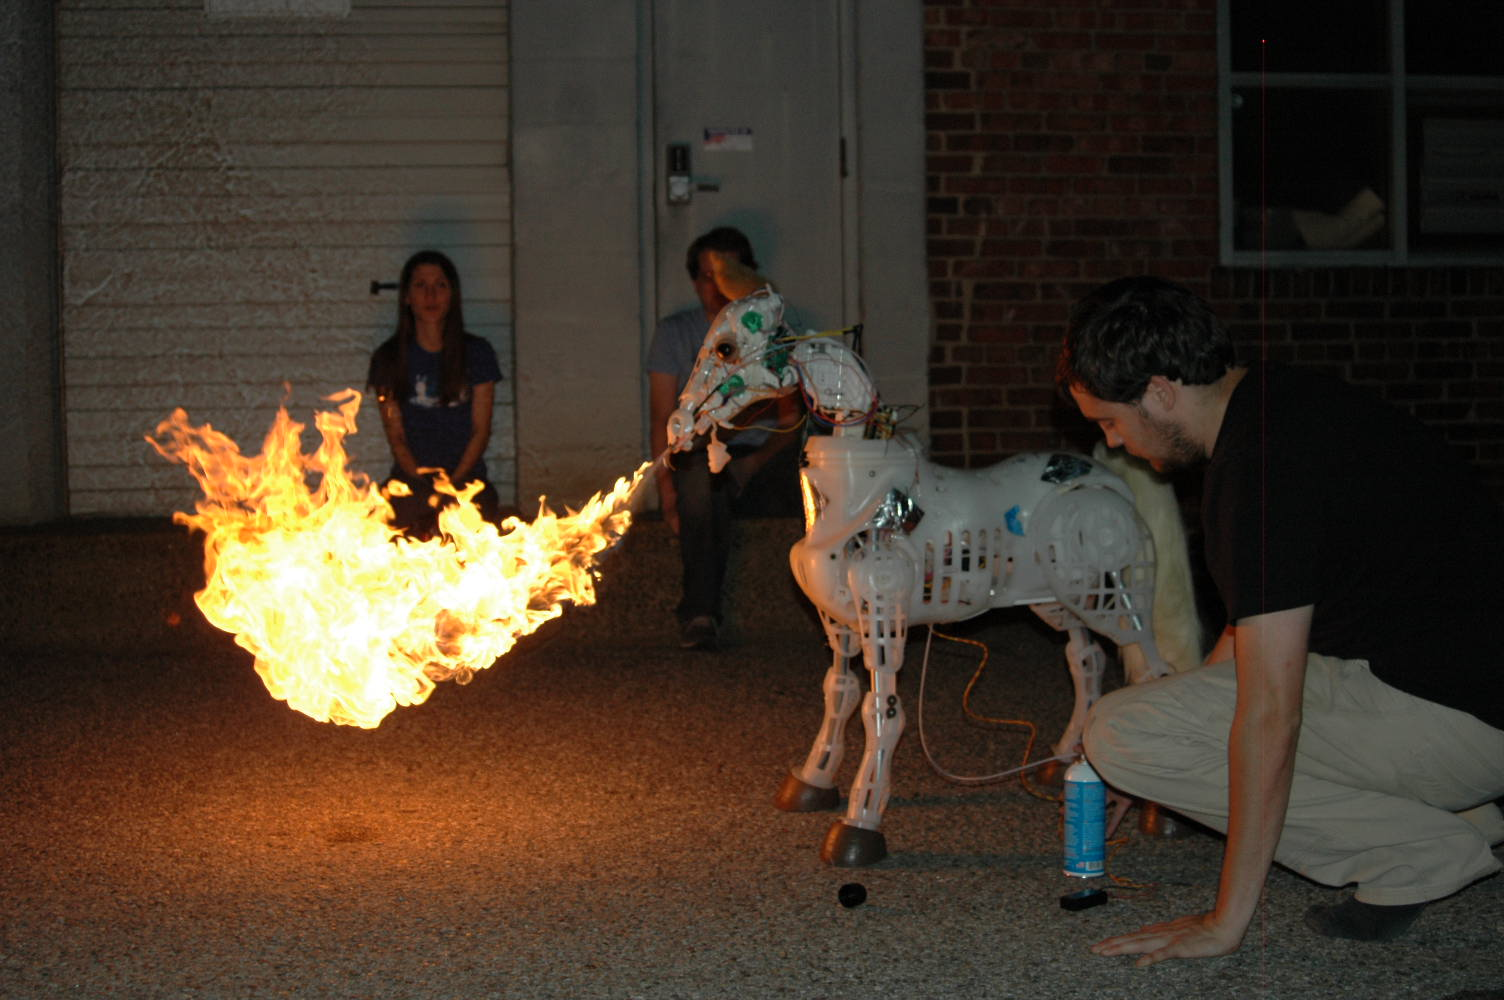 Make a Fire Breathing Animetronic Pony from FurReal Butterscotch or S'Mores